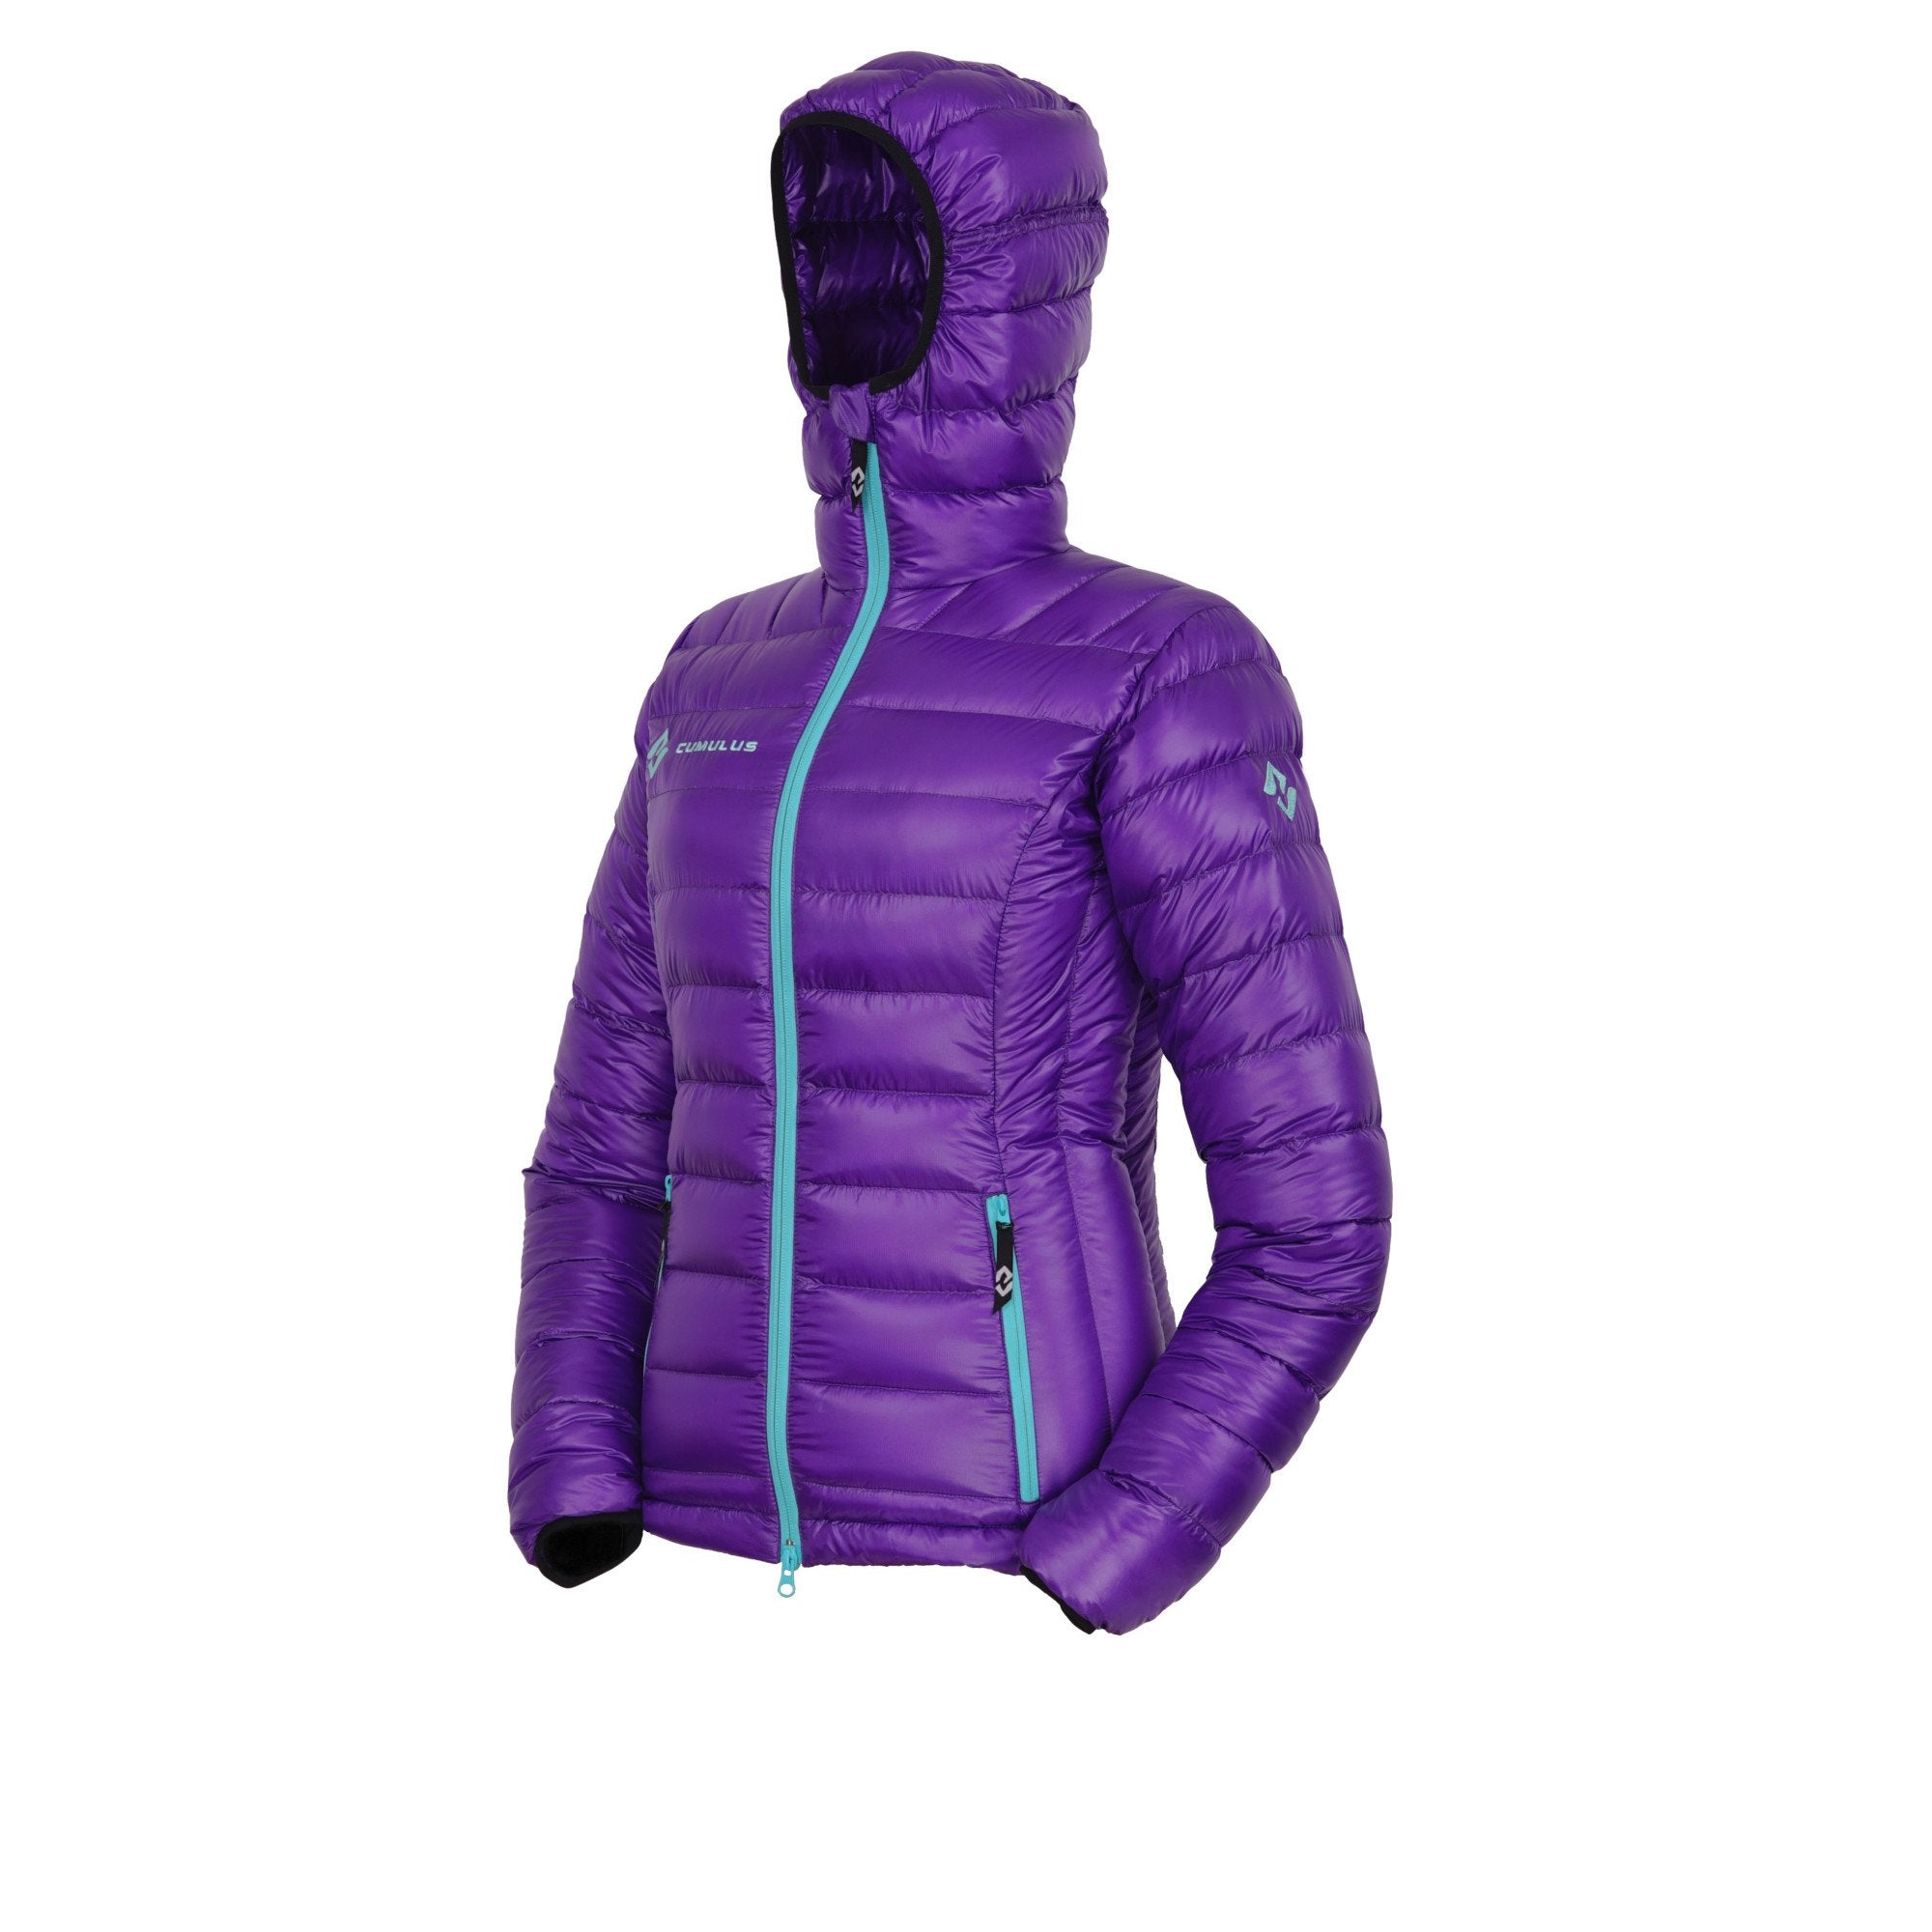 Cumulus Incredilite Jacket Women's